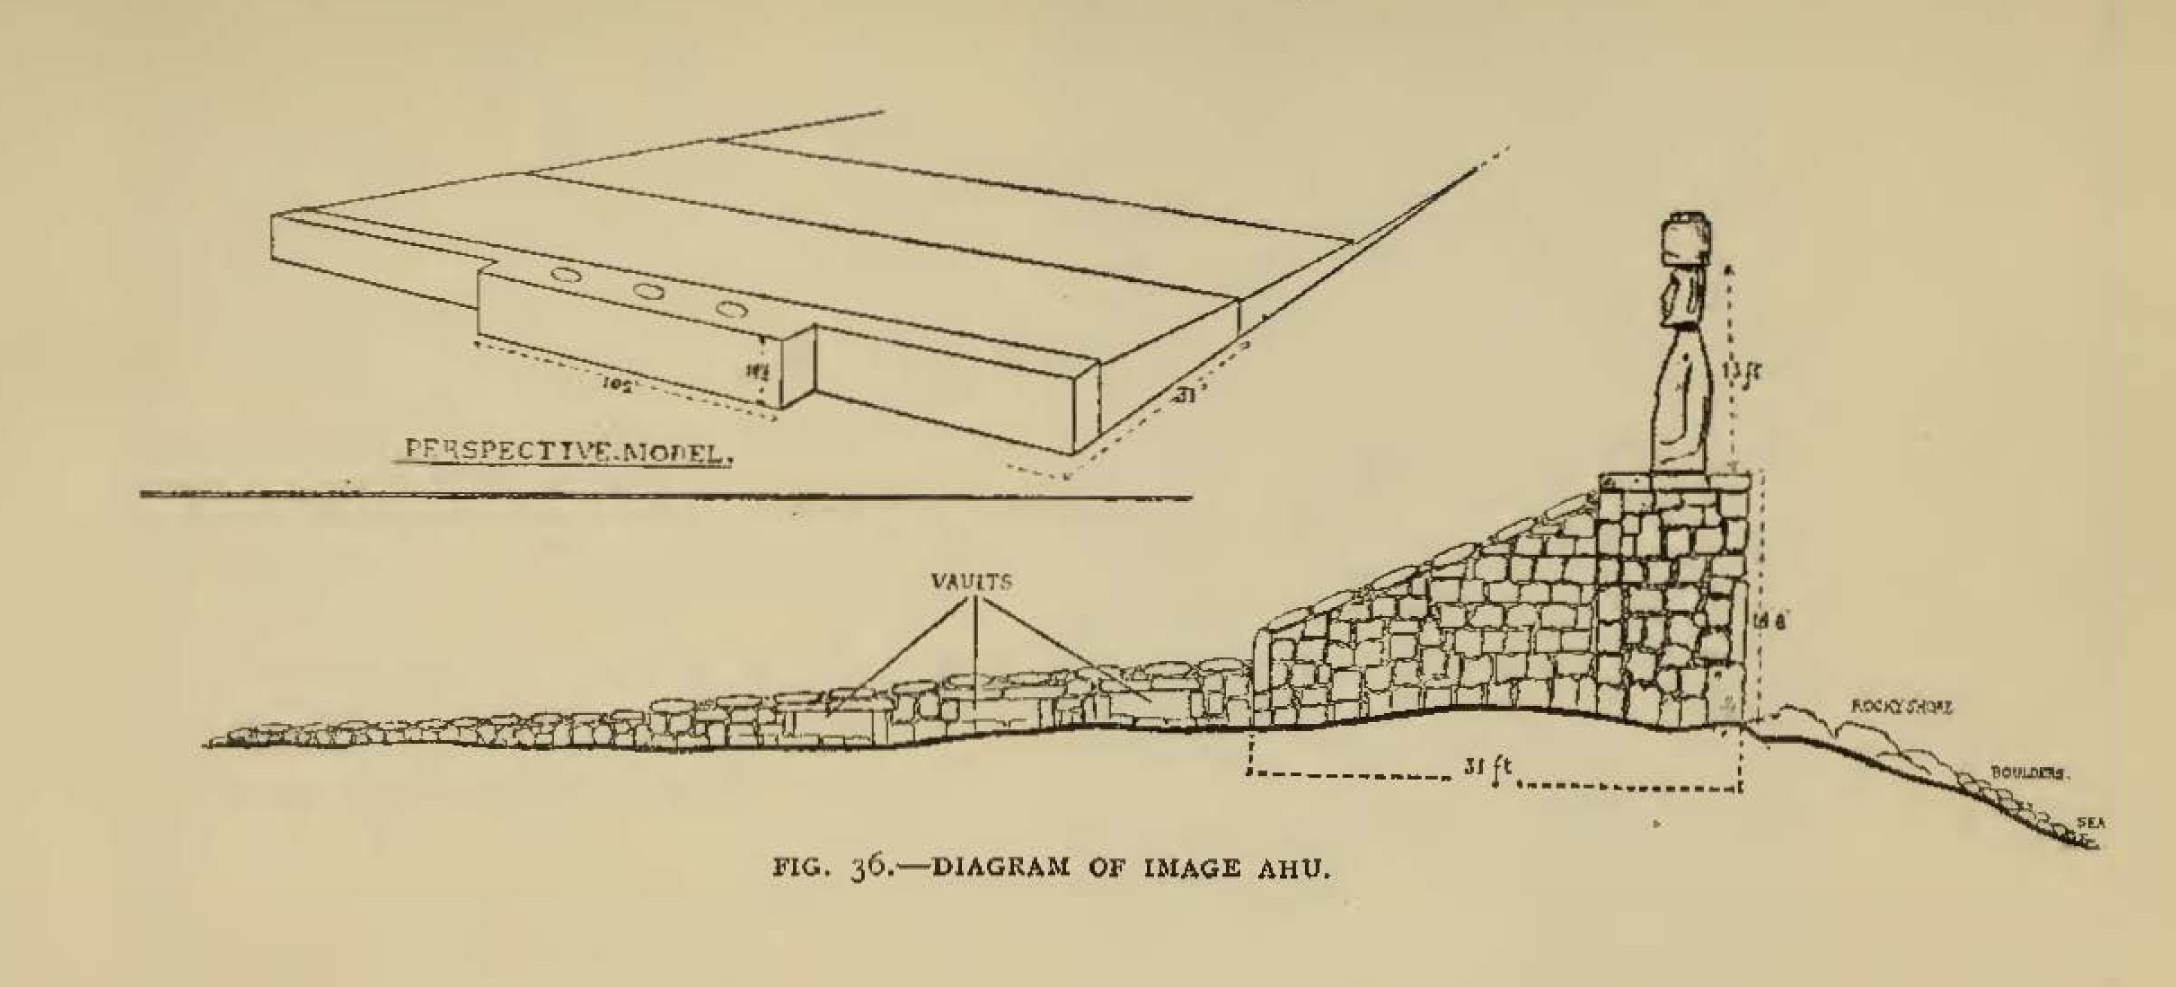 The Mystery Of Easter Island Circuit Also Antique Vintage Floor L S Moreover Led Light Diagram Image Ahu